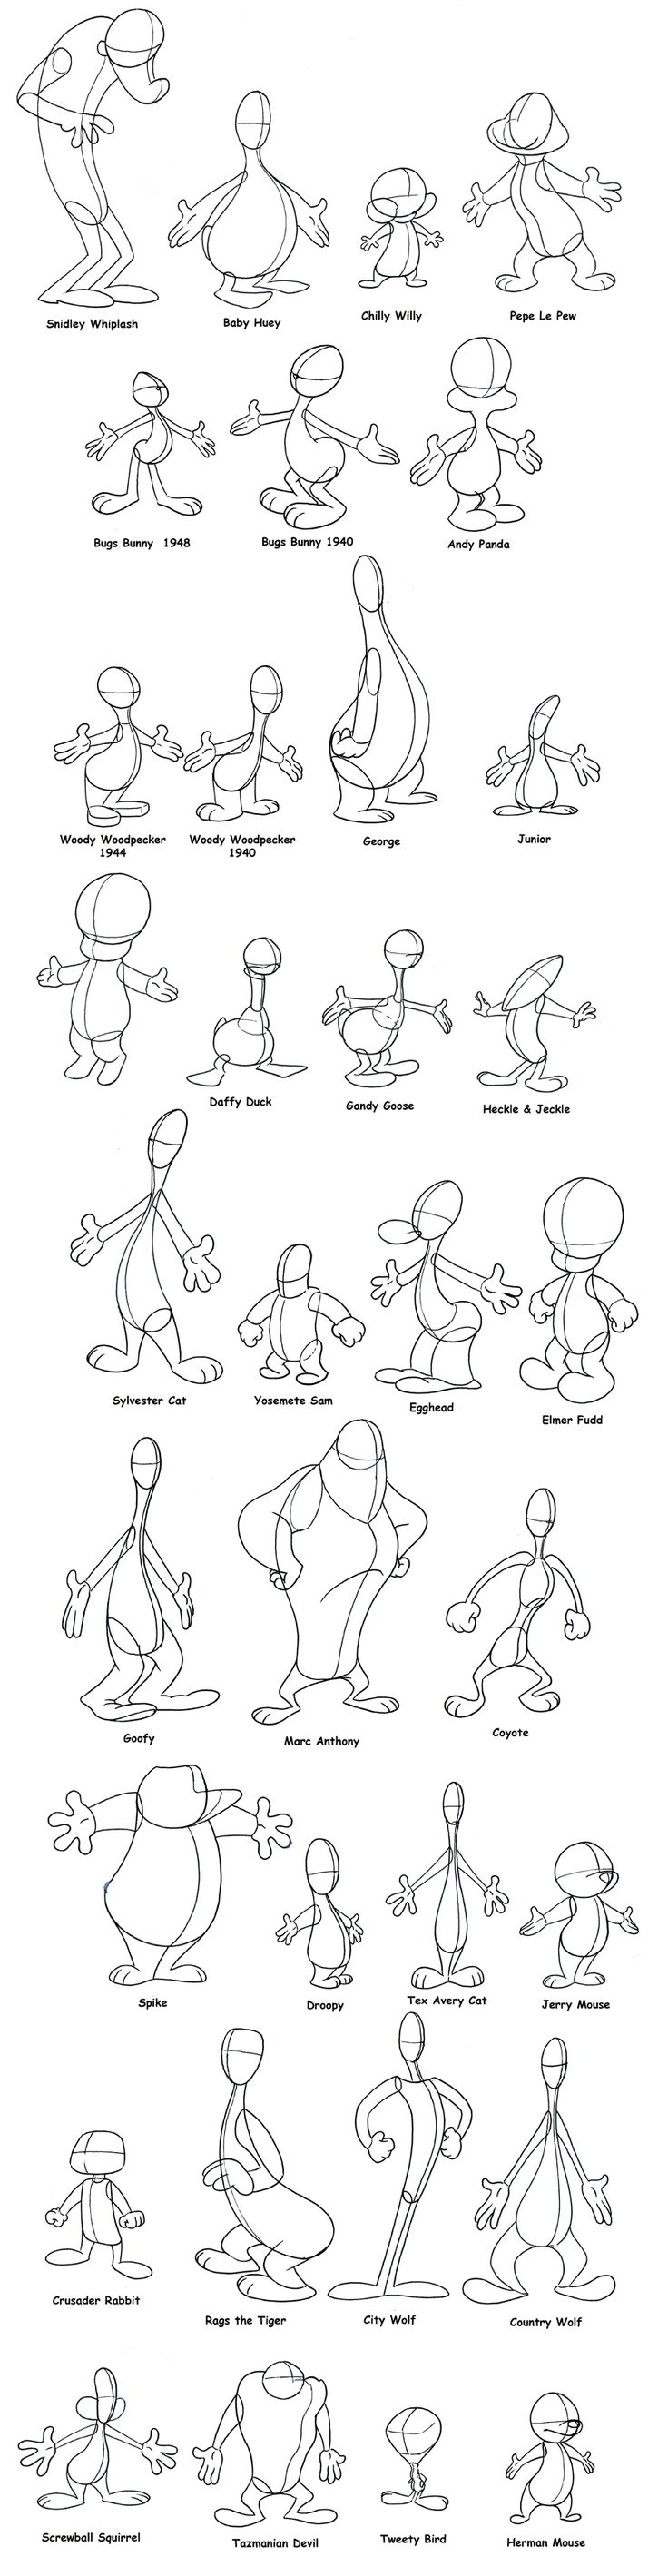 Lip Sync and Character Animation